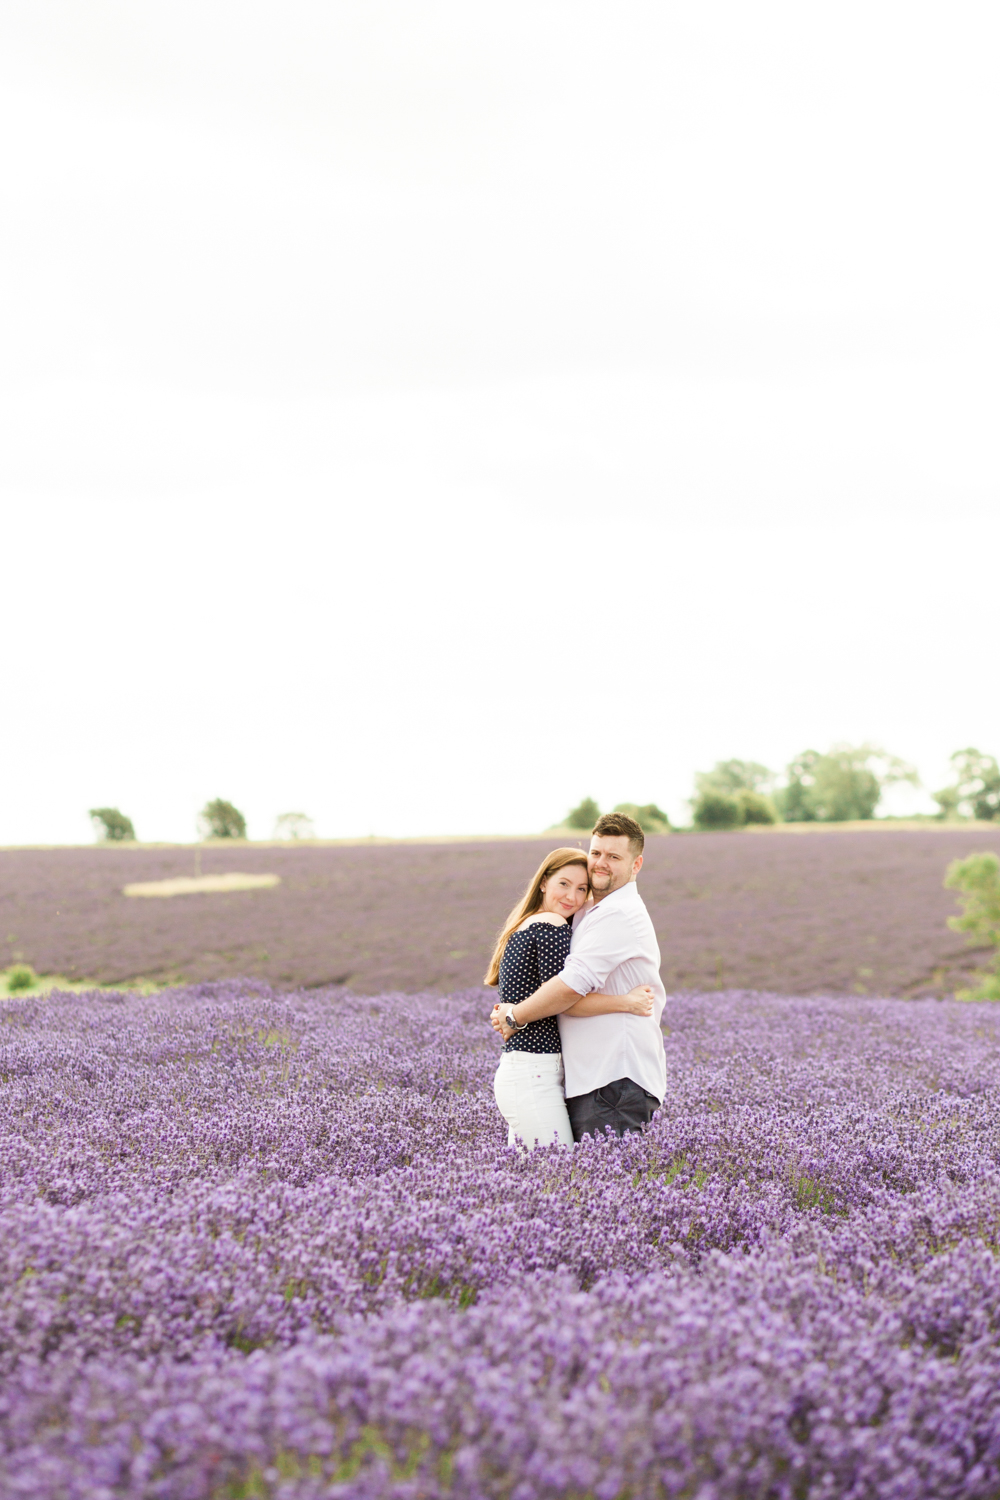 Sophie-Evans-Photograpy-Cotswold-Lavander-Engagement-shoot-Cotswold-wedding-photographer-13.jpg